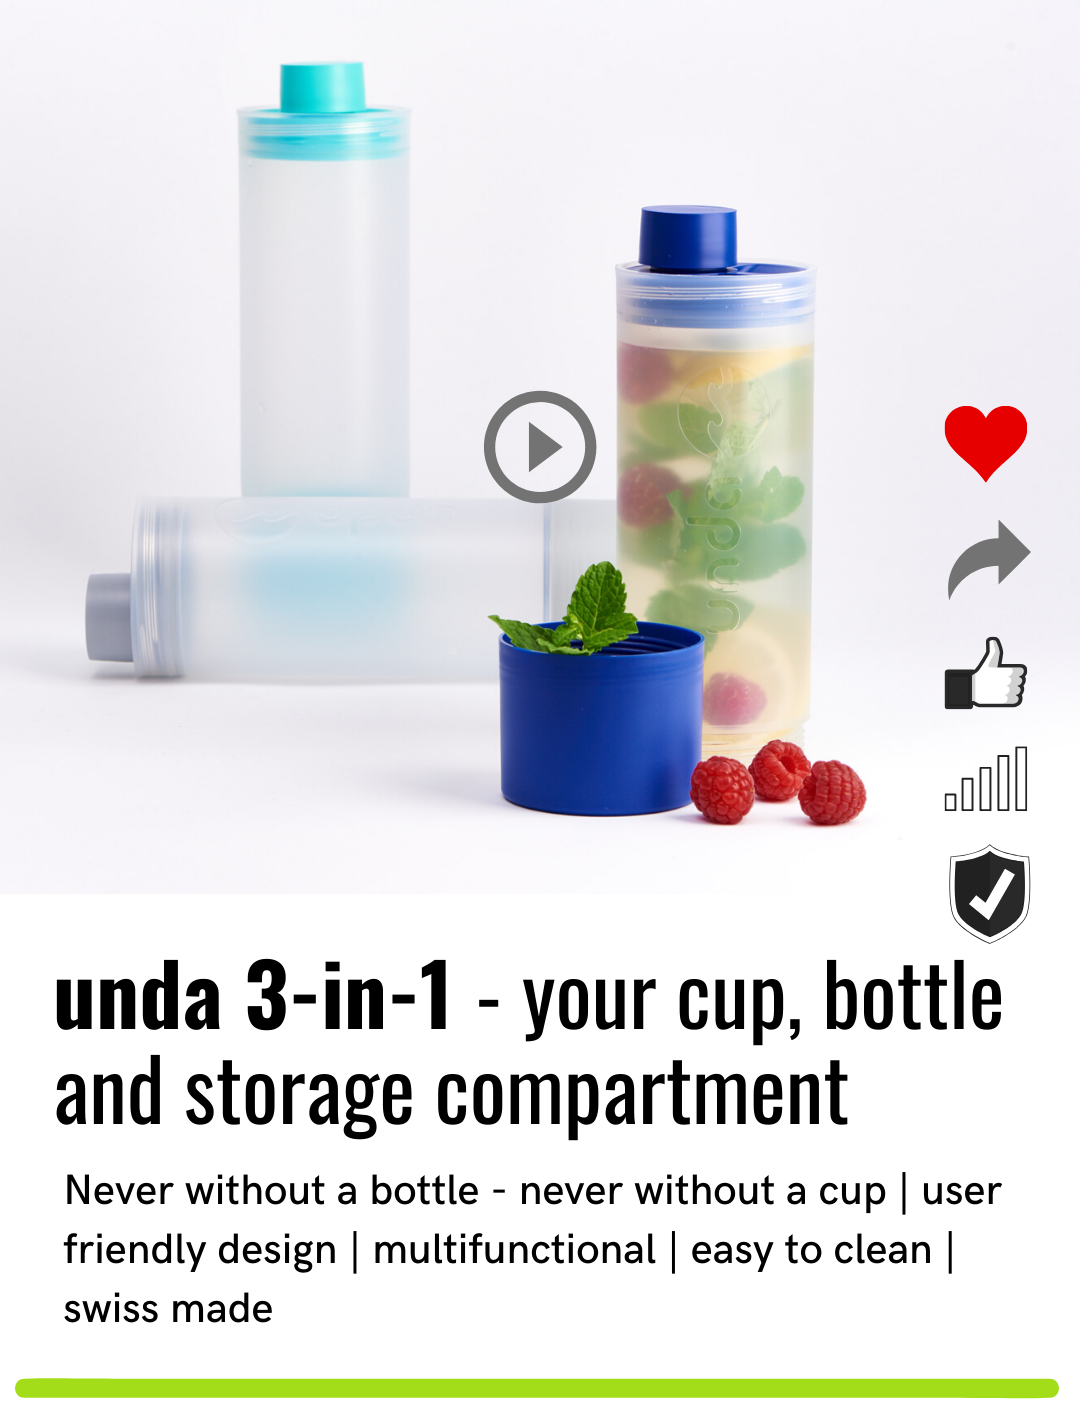 unda: The 3-in-1 bottle, cup and storage compartment